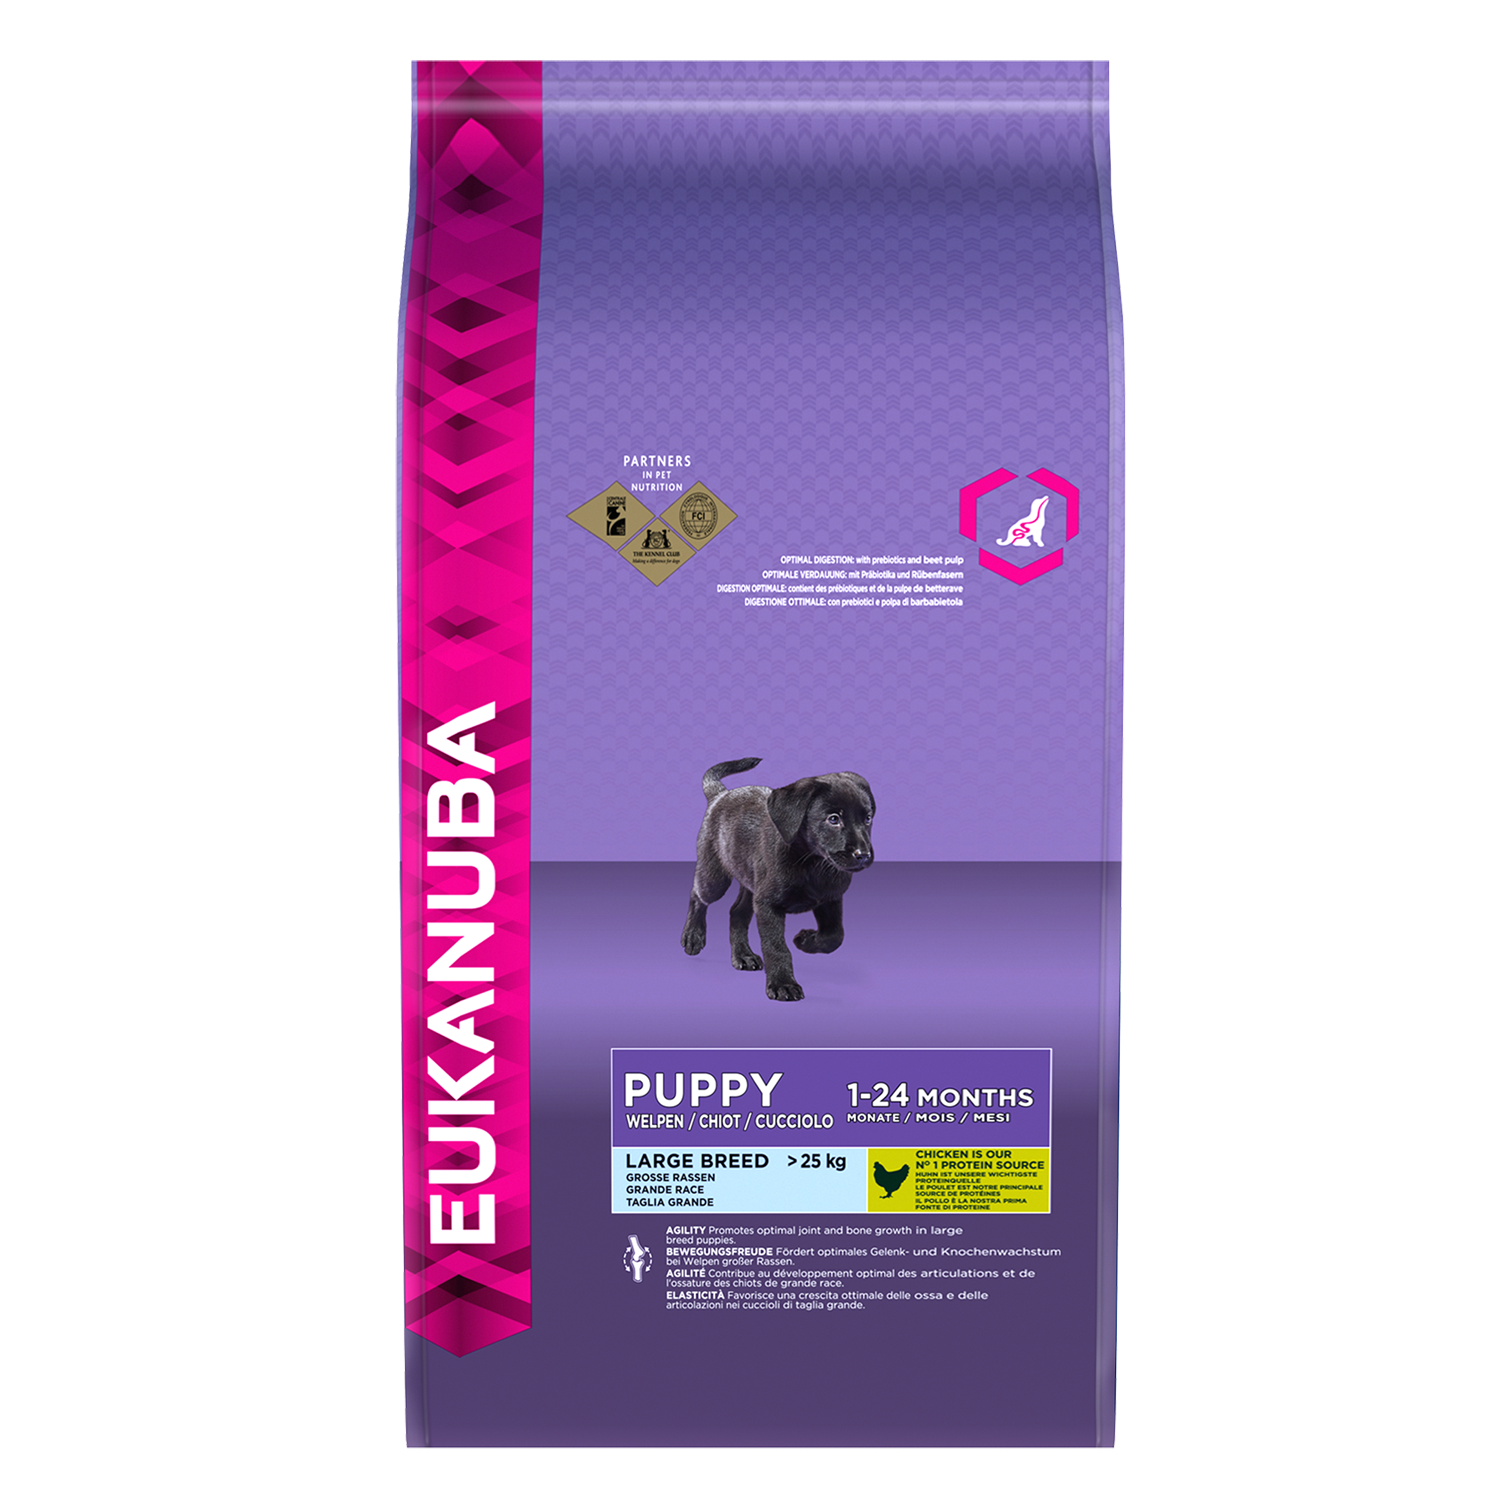 Eukanuba Puppy Food >> EUKANUBA Puppy Dry Dog Food For Large Breed, Chicken - Dog Food,Nutrition and Breed Information ...